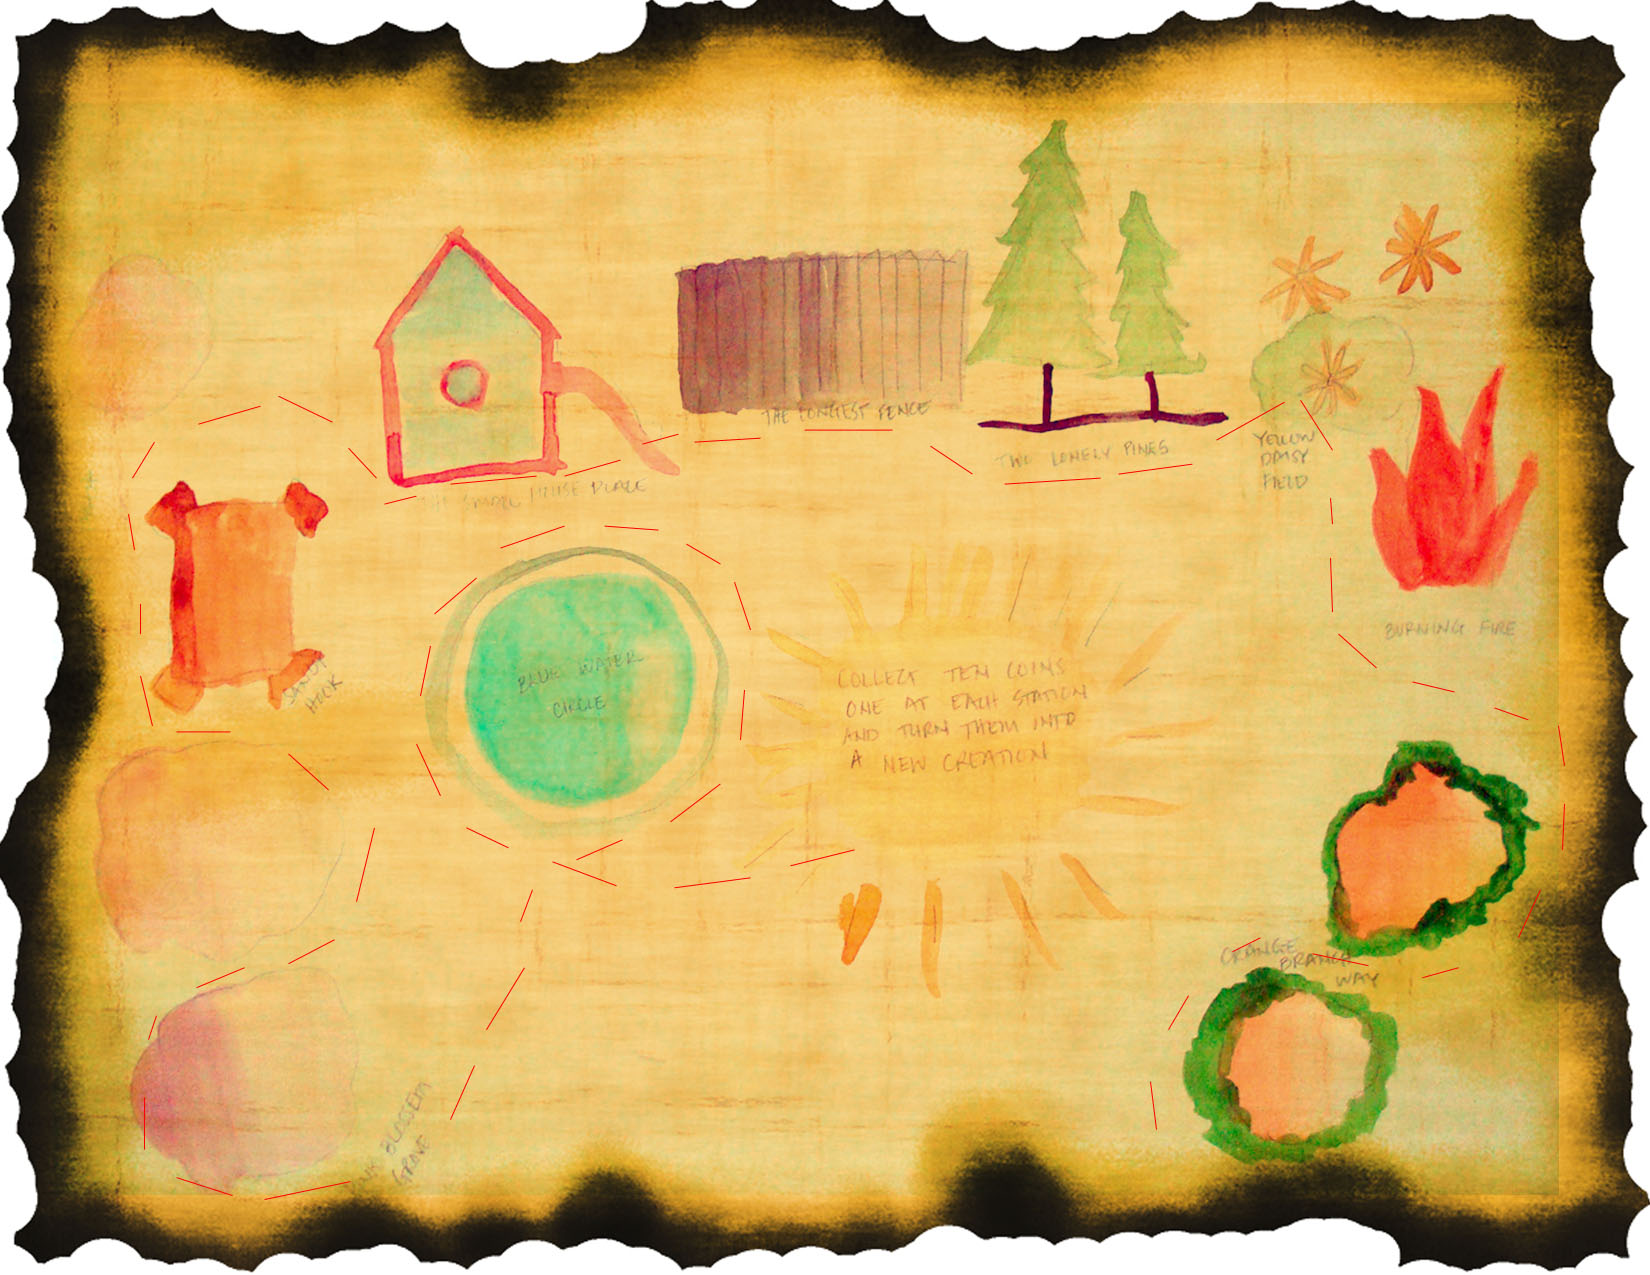 Toddler Treasure Map and Scavenger Hunt Printables - Amy's ... on treasure map bulletin board, treasure map cake, treasure map outline, treasure map riddles, treasure hunter map, build a treasure map, treasure map ideas, treasure world map, treasure map coloring page, treasure map template, make treasure map, santa treasure map, blank treasure map, treasure maps to print, treasure map x, treasure map symbols, buried treasure map, treasure map drawing, treasure hunting map, treasure map invitations,